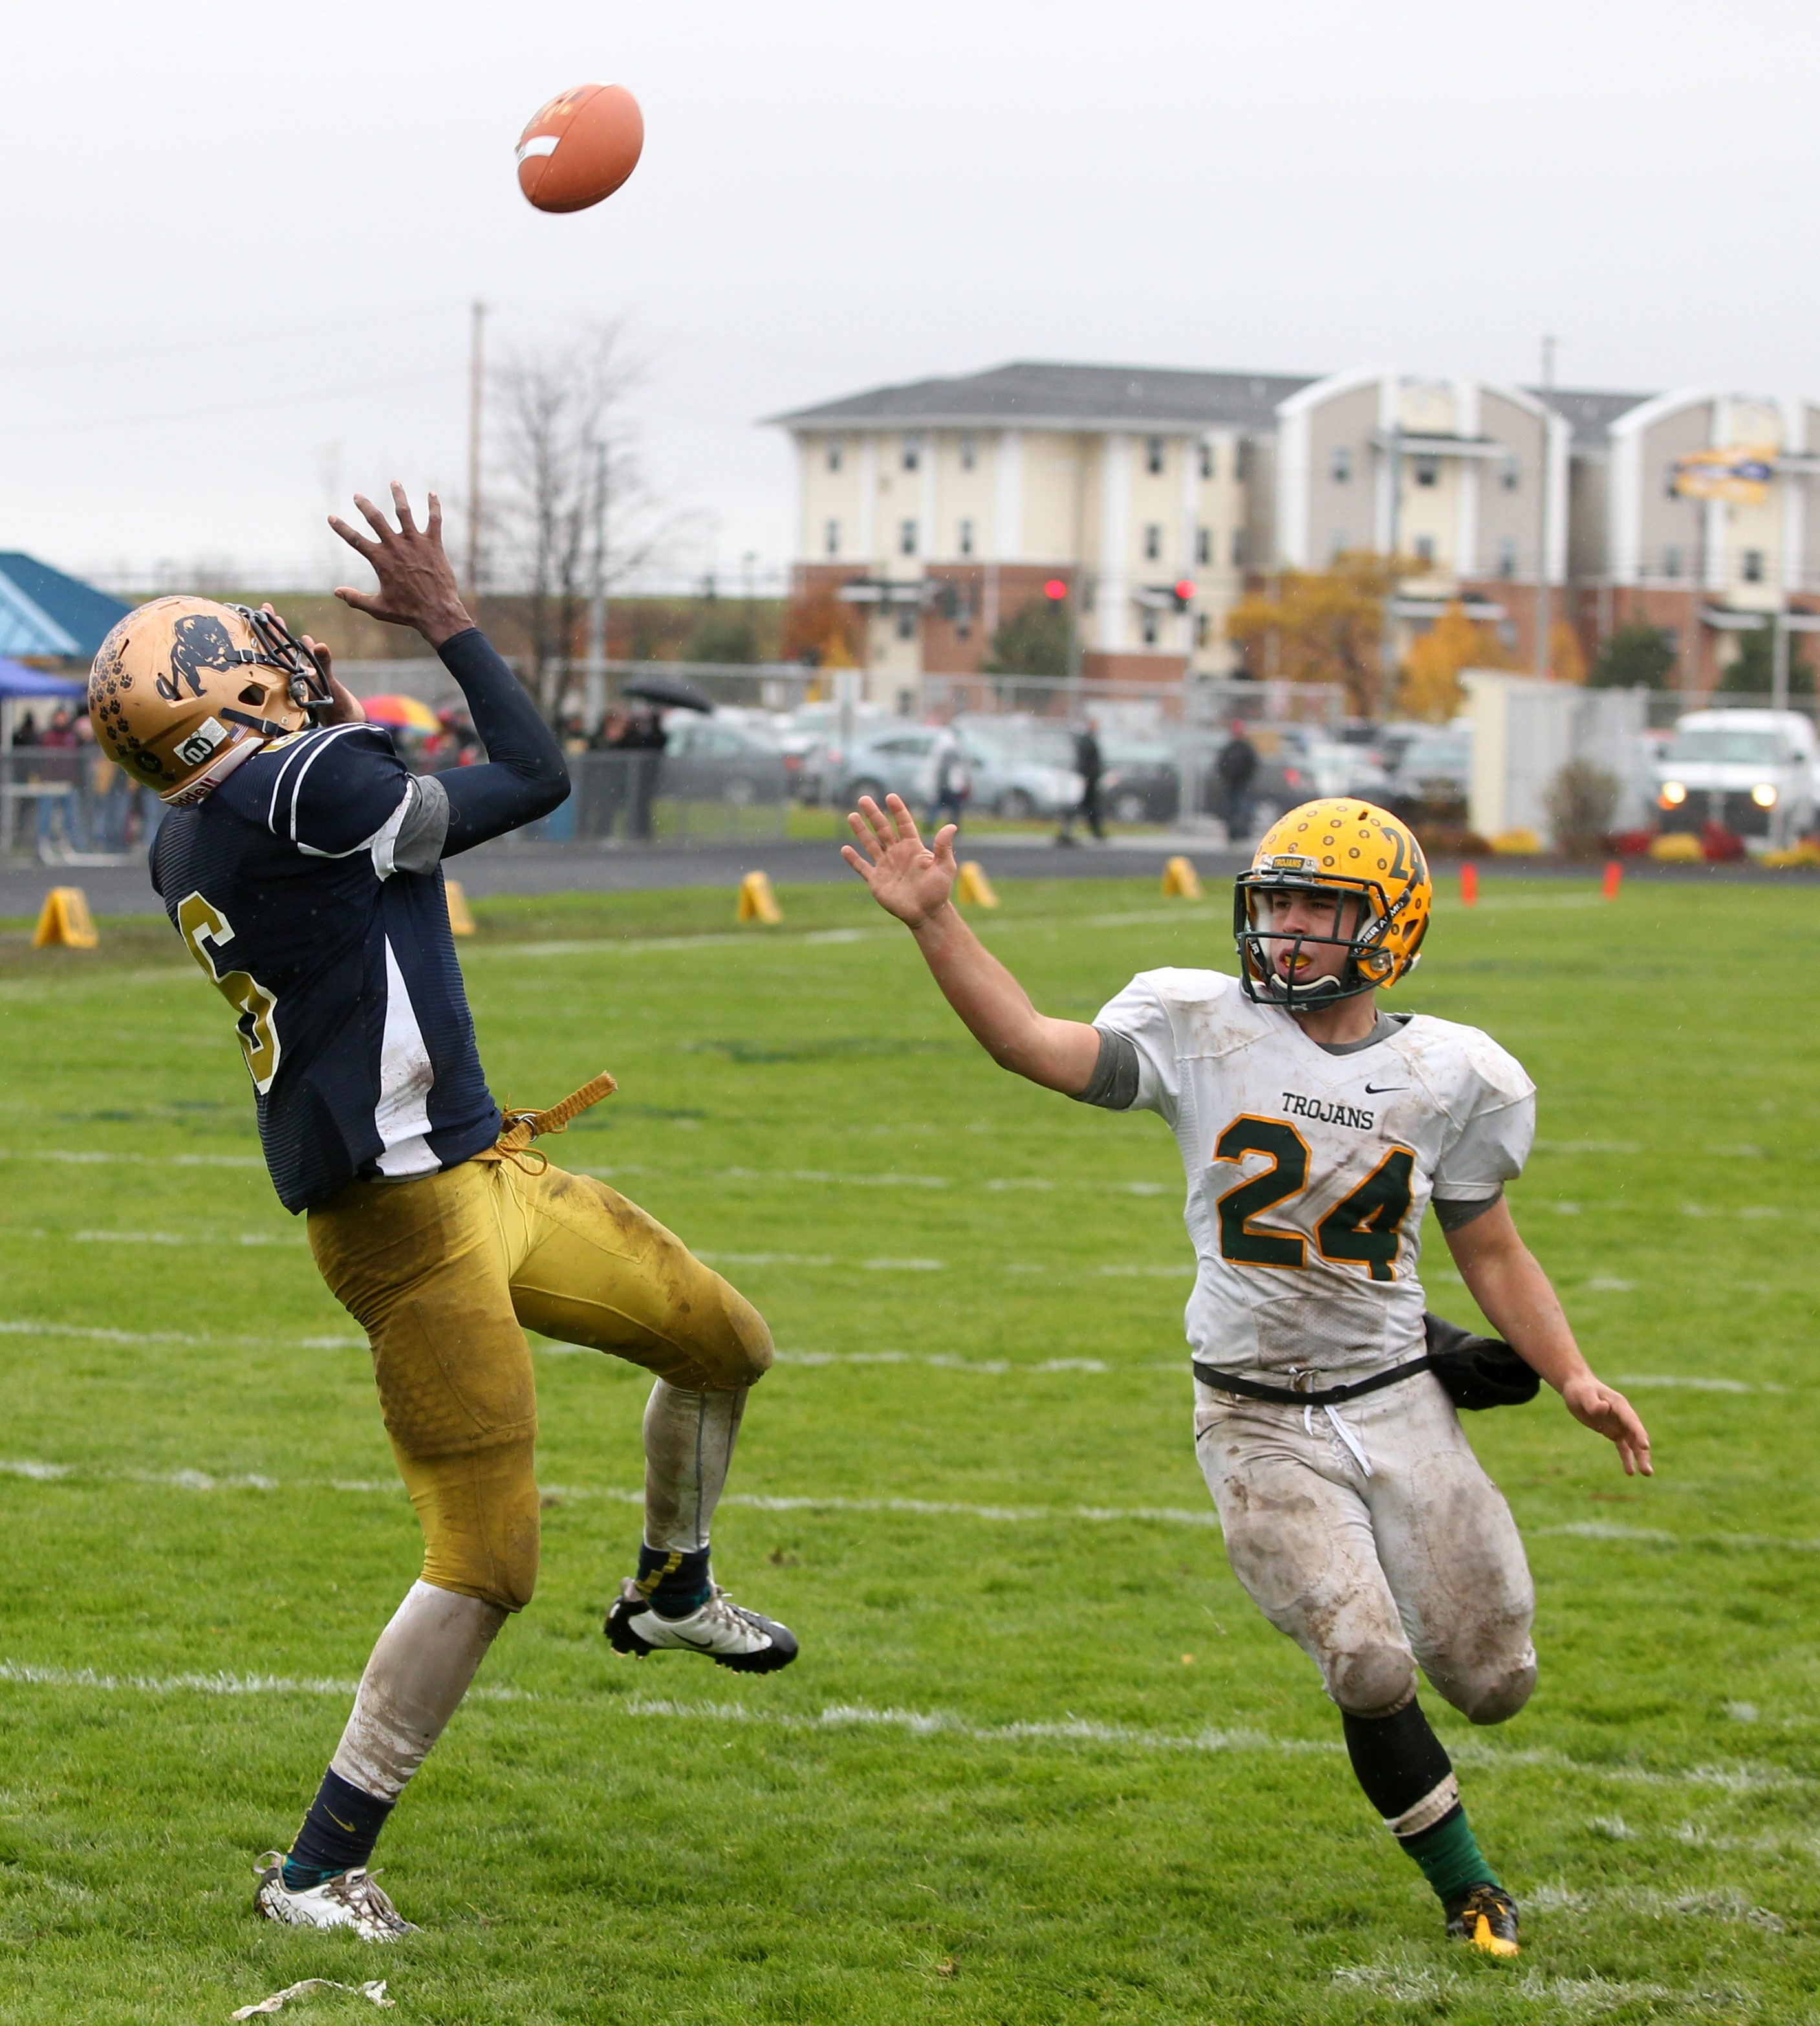 Sweet Home's Brandon Smiley makes a touchdown reception as West Seneca East's Mike Waterman (24) defends.